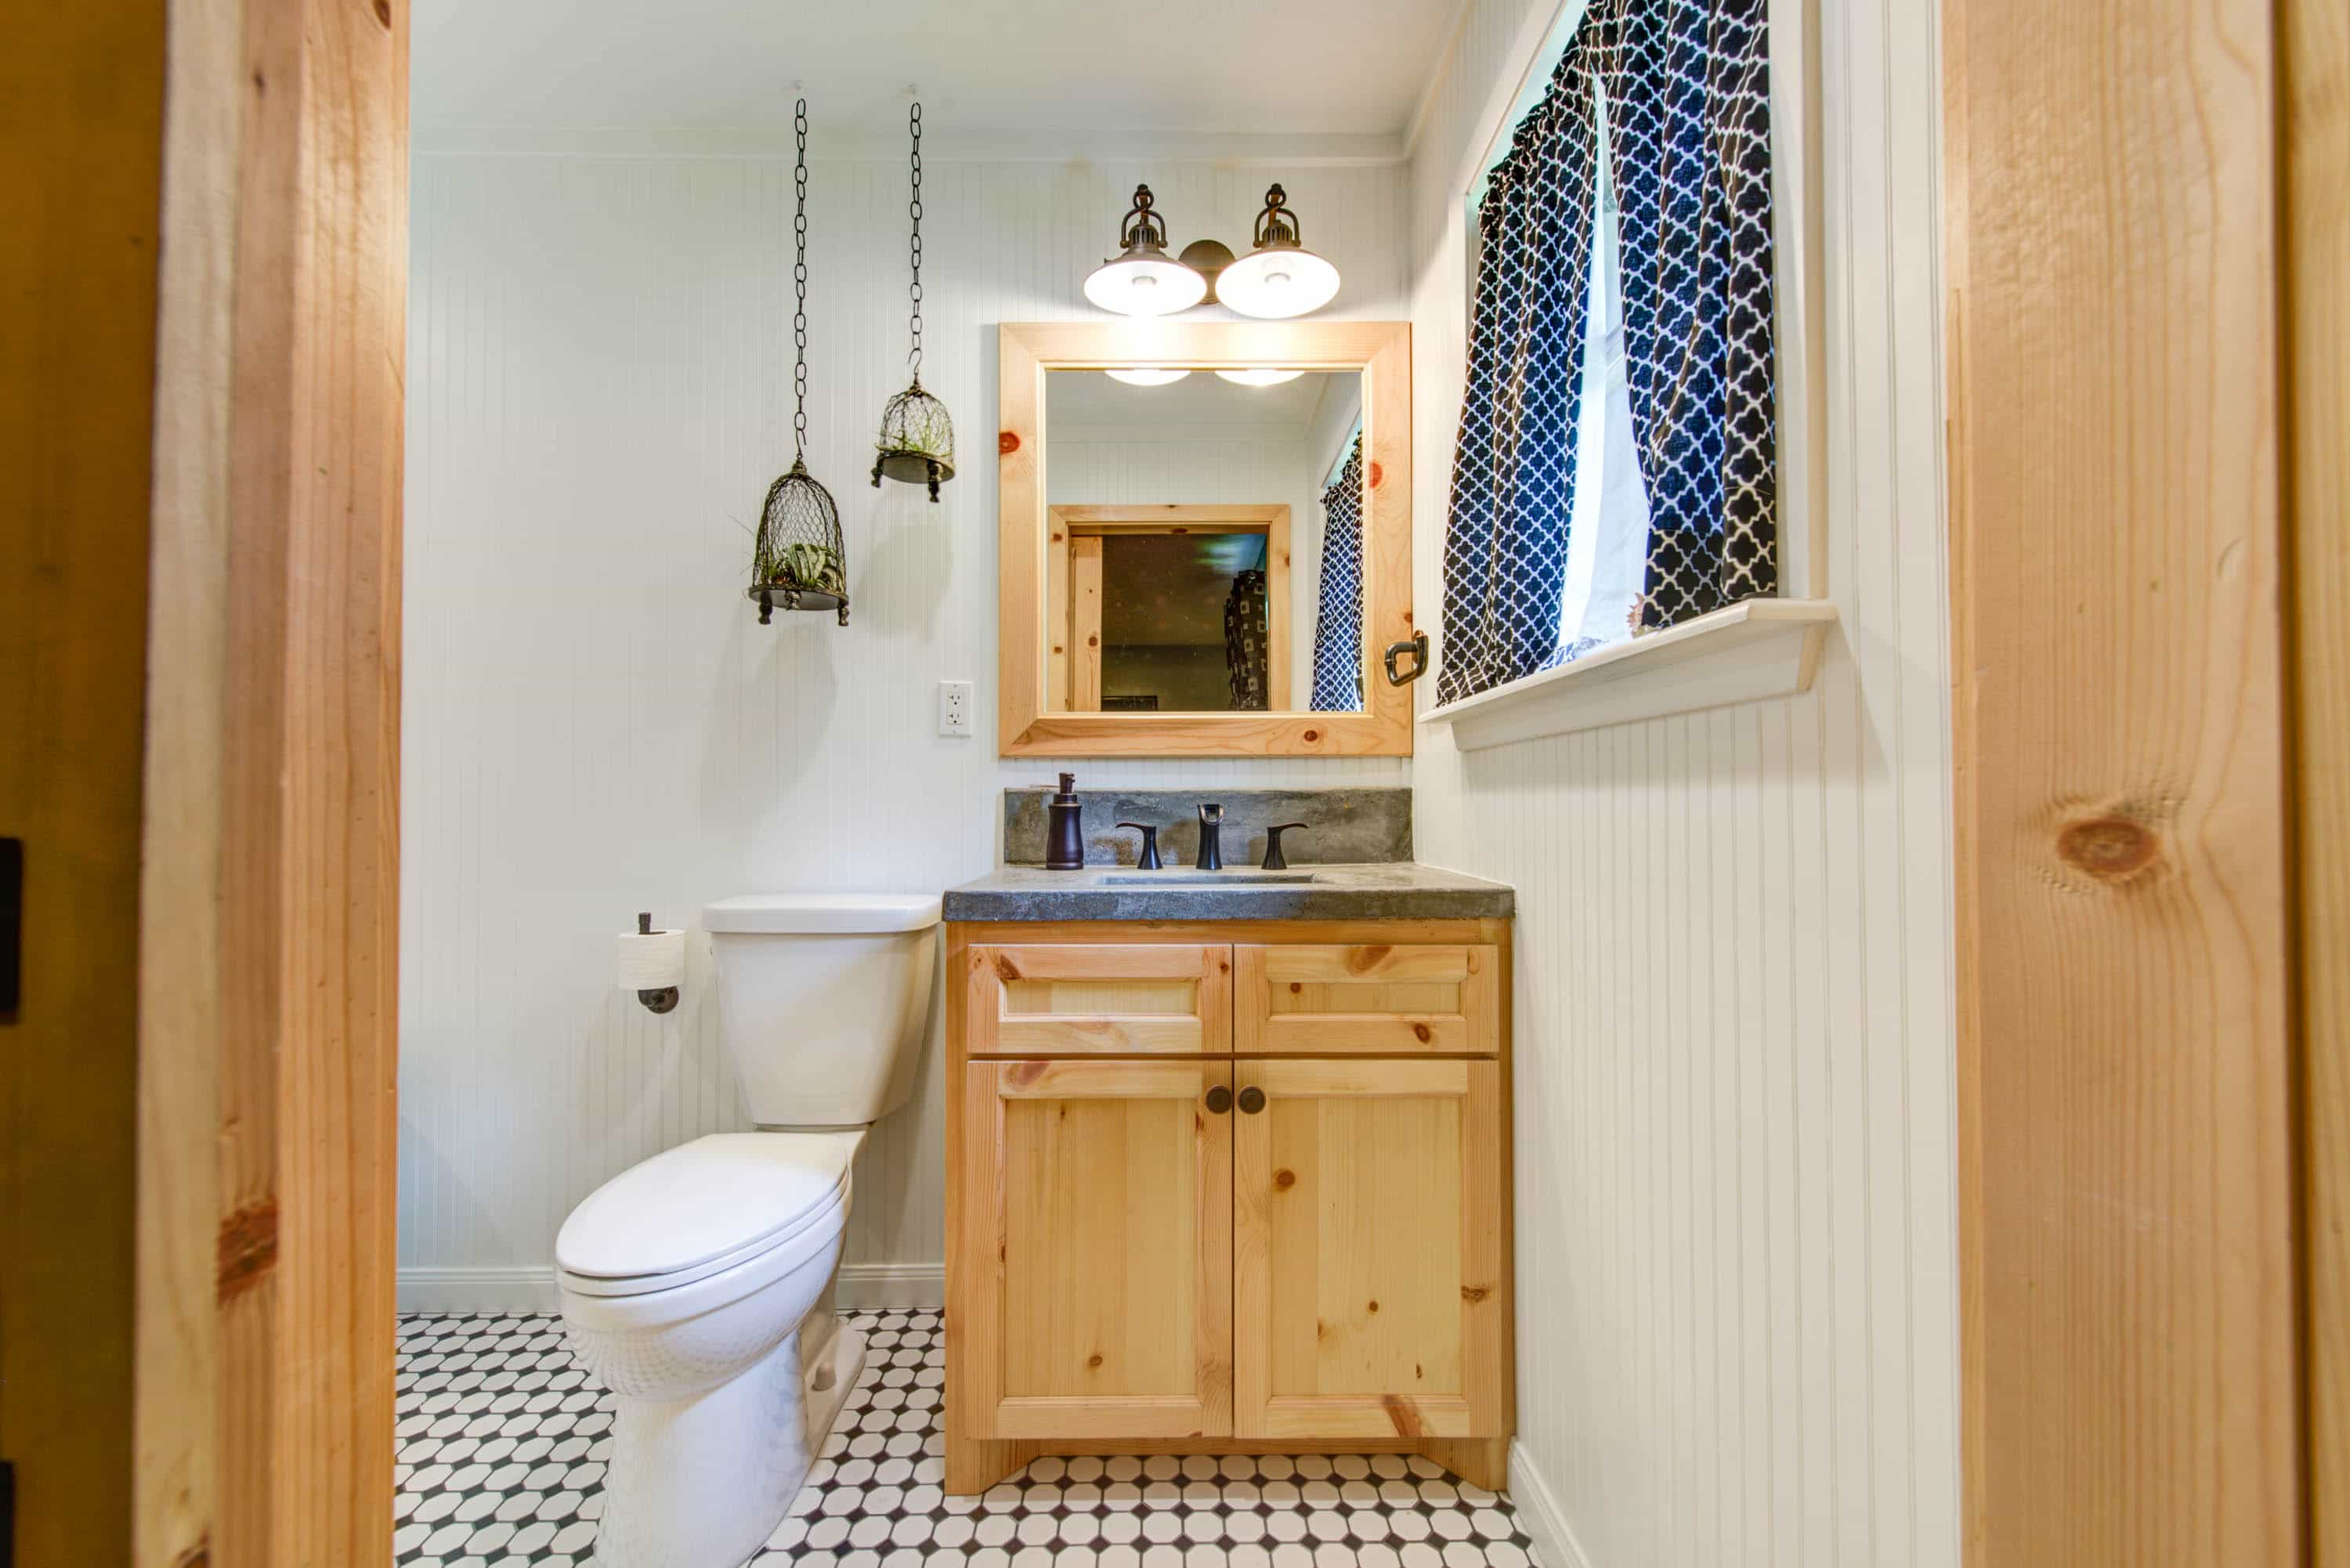 Bathroom remodeling houston tx powers remodeling for Bathroom remodel 77084